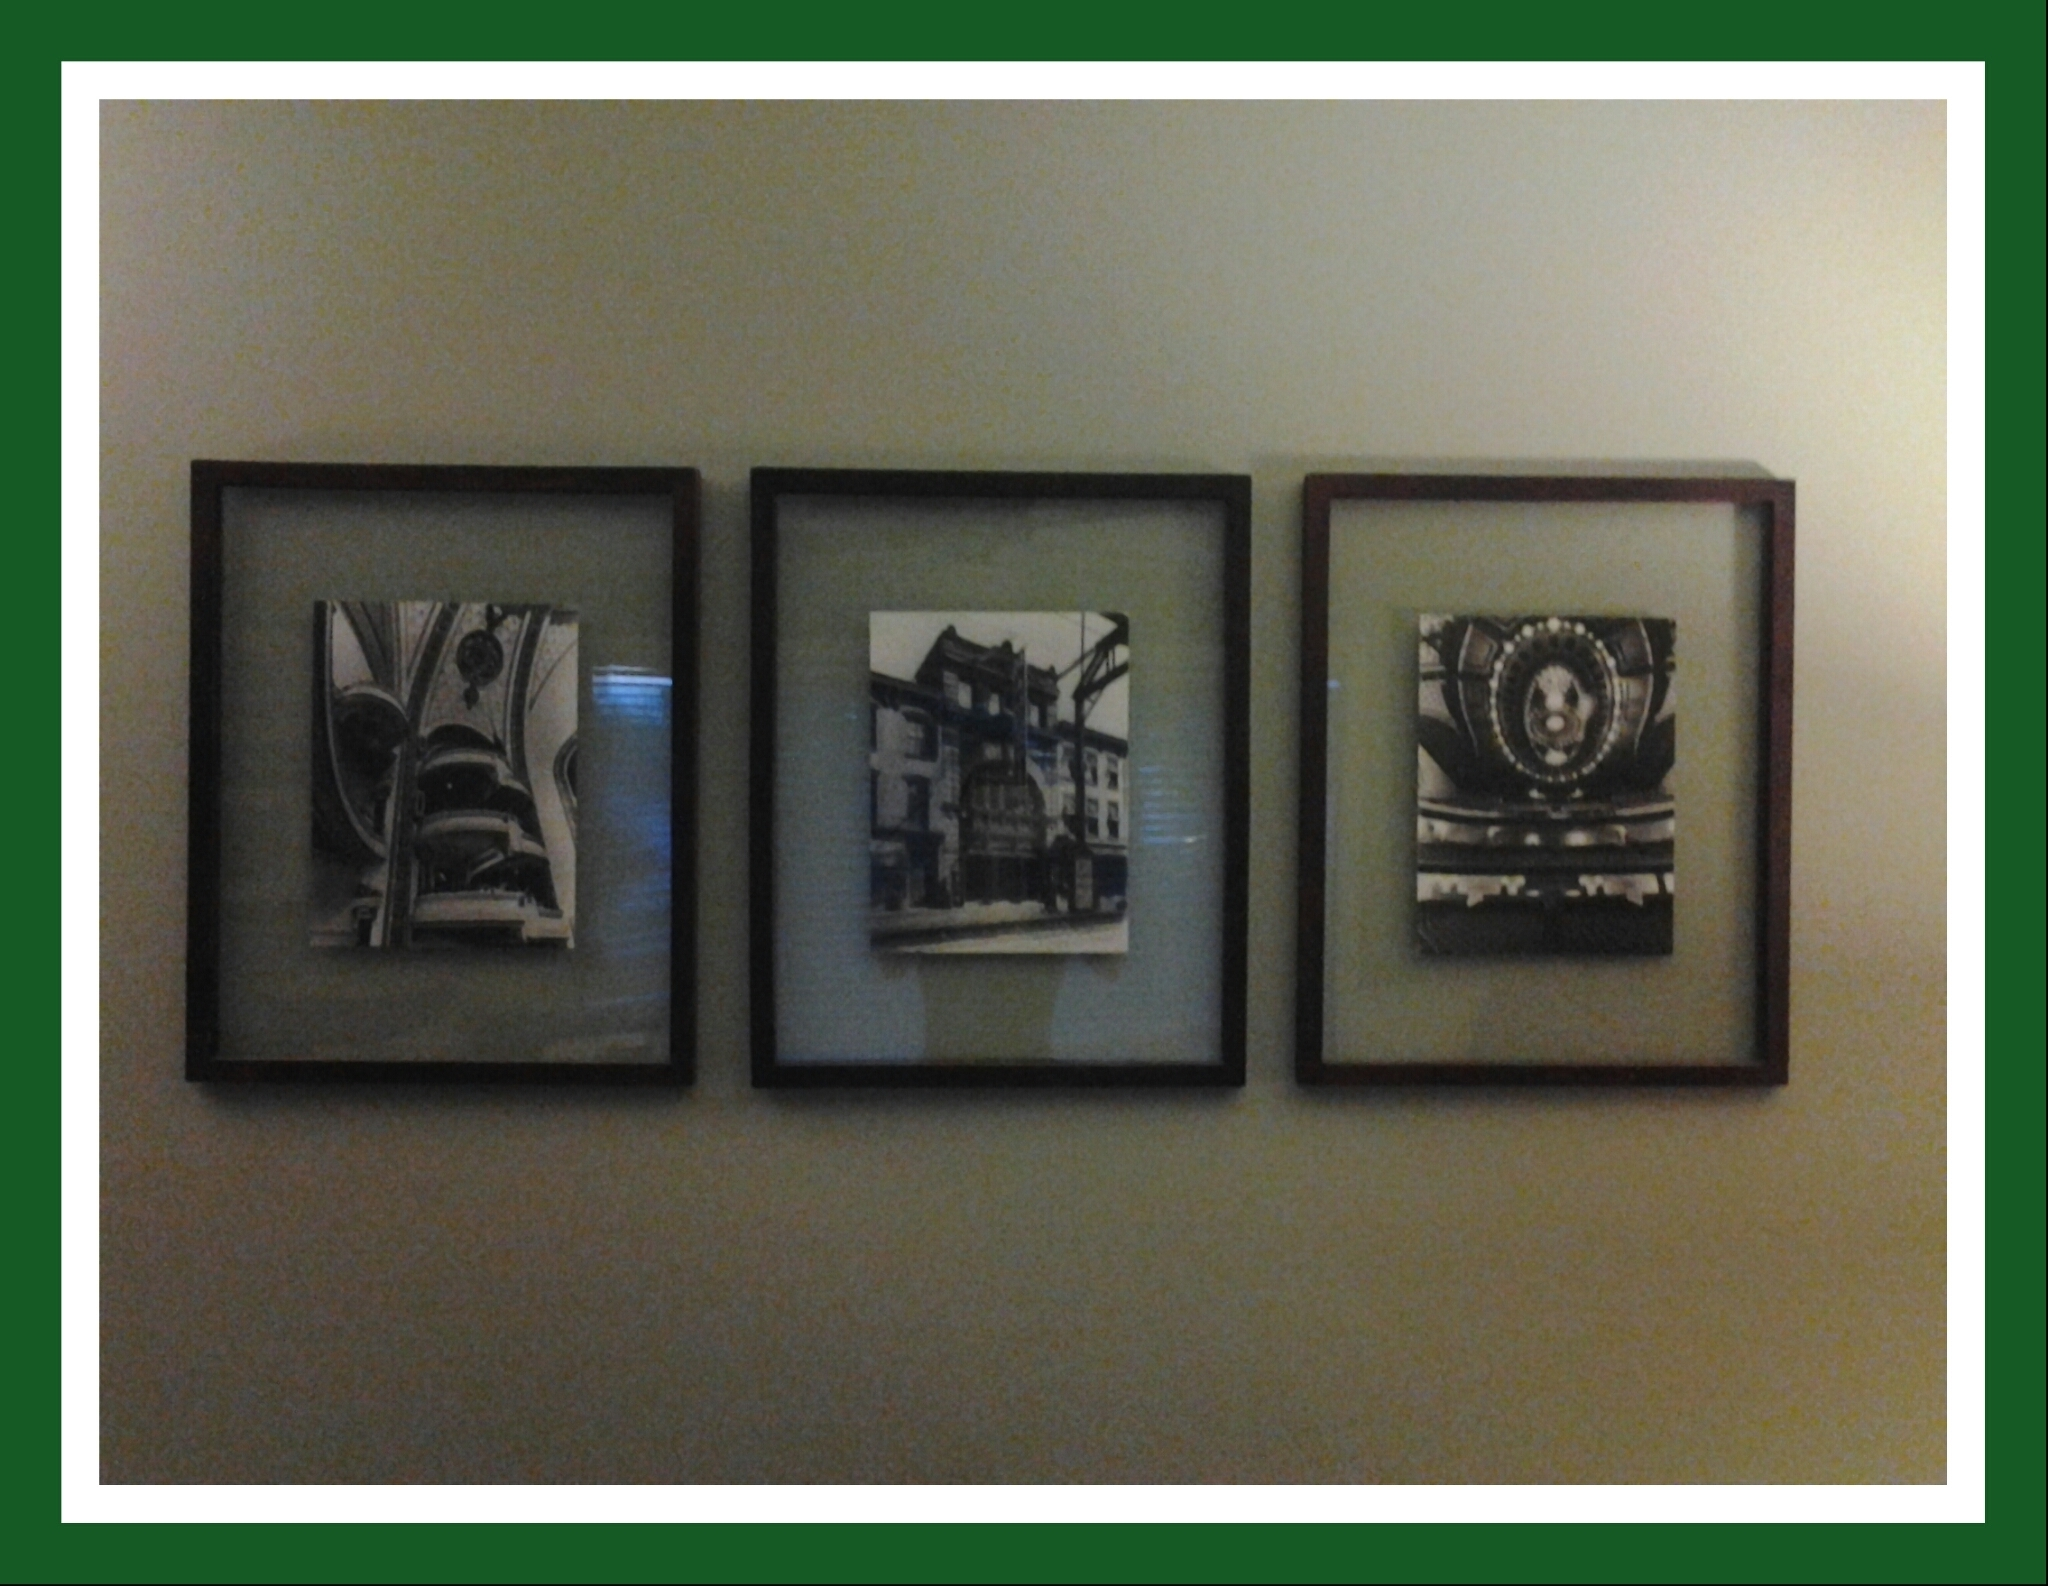 Diy Inexpensive Wall Art – Diy With Dawn With Regard To Current Inexpensive Wall Art (View 13 of 20)